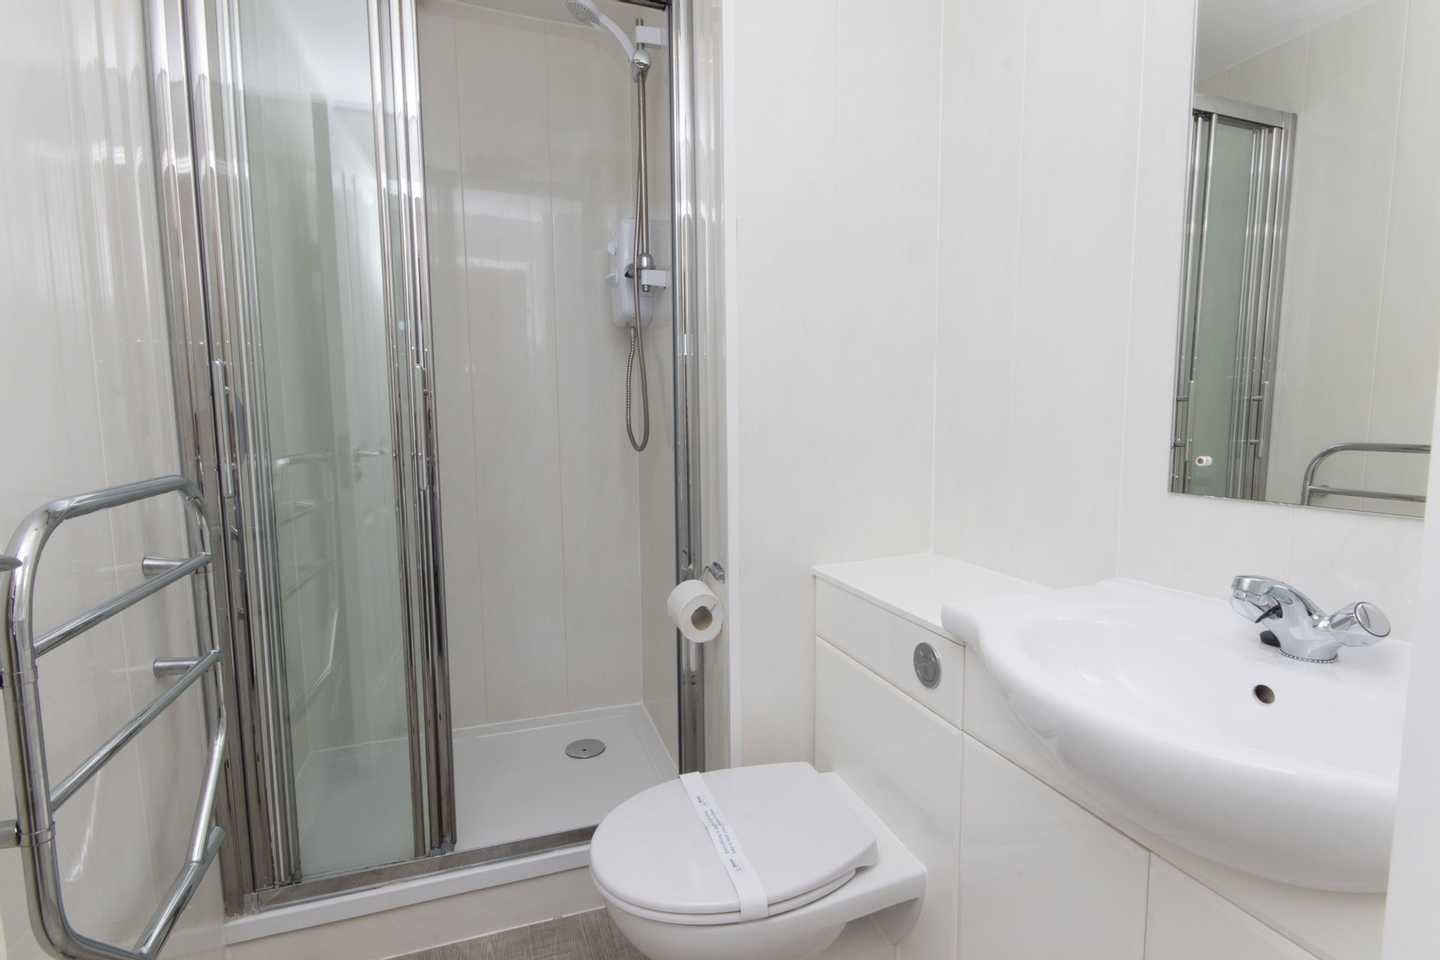 A Comfort with veranda bathroom with shower, toilet, sink and mirror